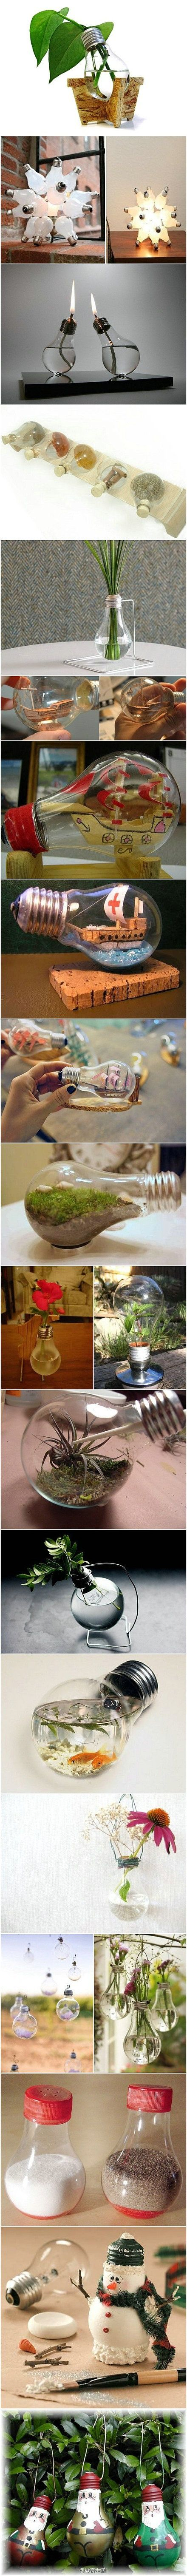 Recycled lightbulbs! I love this idea because I always hate throwing them away